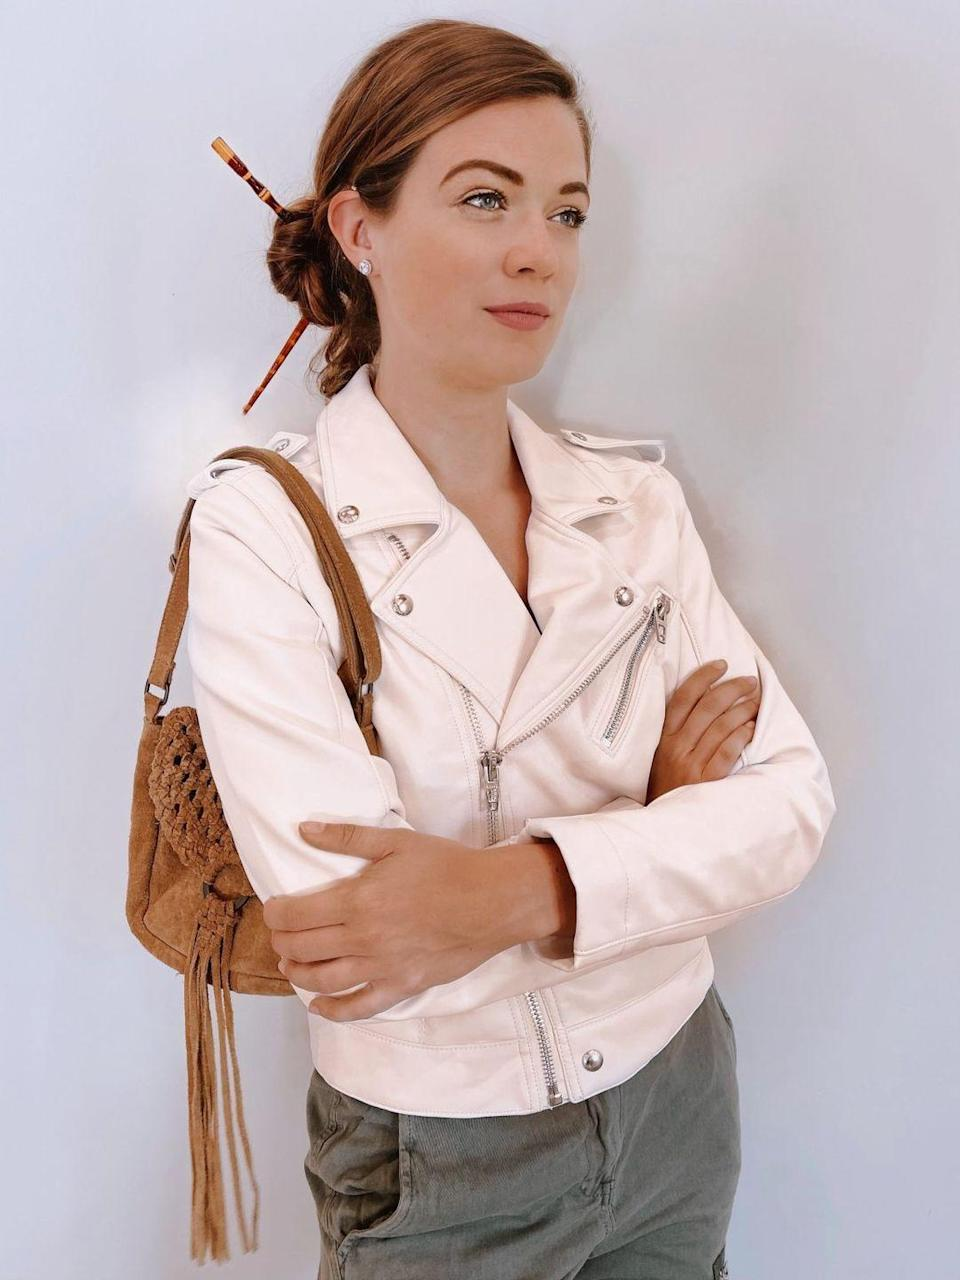 "<p>If you prefer Jenna's outfits from her time as an editor at fashion magazine<em> Poise</em>, we've got you covered: You can pull off this leather jacket look for a 2000s outfit that's still appropriate for work. </p><p><em><a href=""http://www.mimosasmanhattan.com/recreating-all-things-jenna-rink-13-going-on-30/"" rel=""nofollow noopener"" target=""_blank"" data-ylk=""slk:Get the tutorial at Mimosas and Manhattan »"" class=""link rapid-noclick-resp"">Get the tutorial at Mimosas and Manhattan »</a></em></p>"